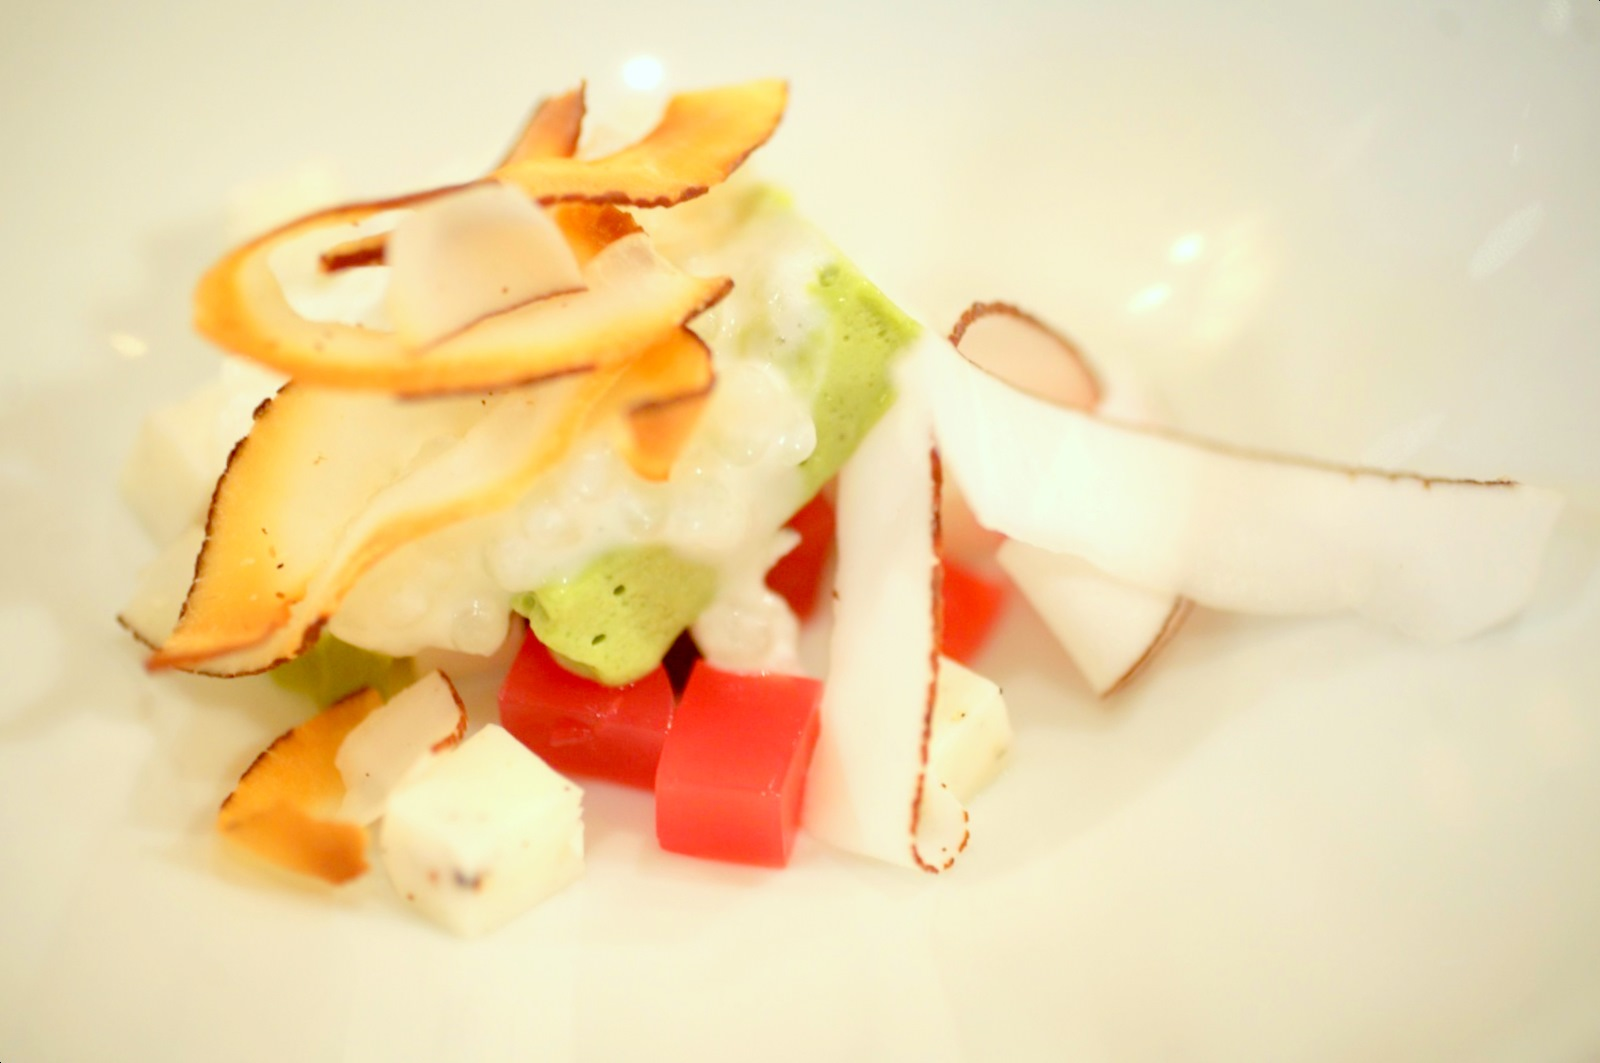 Pierre Gagnaire, Paris - Coconut & vanilla tapioca, toasted coconut, pistachio ice cream, red bell pepper